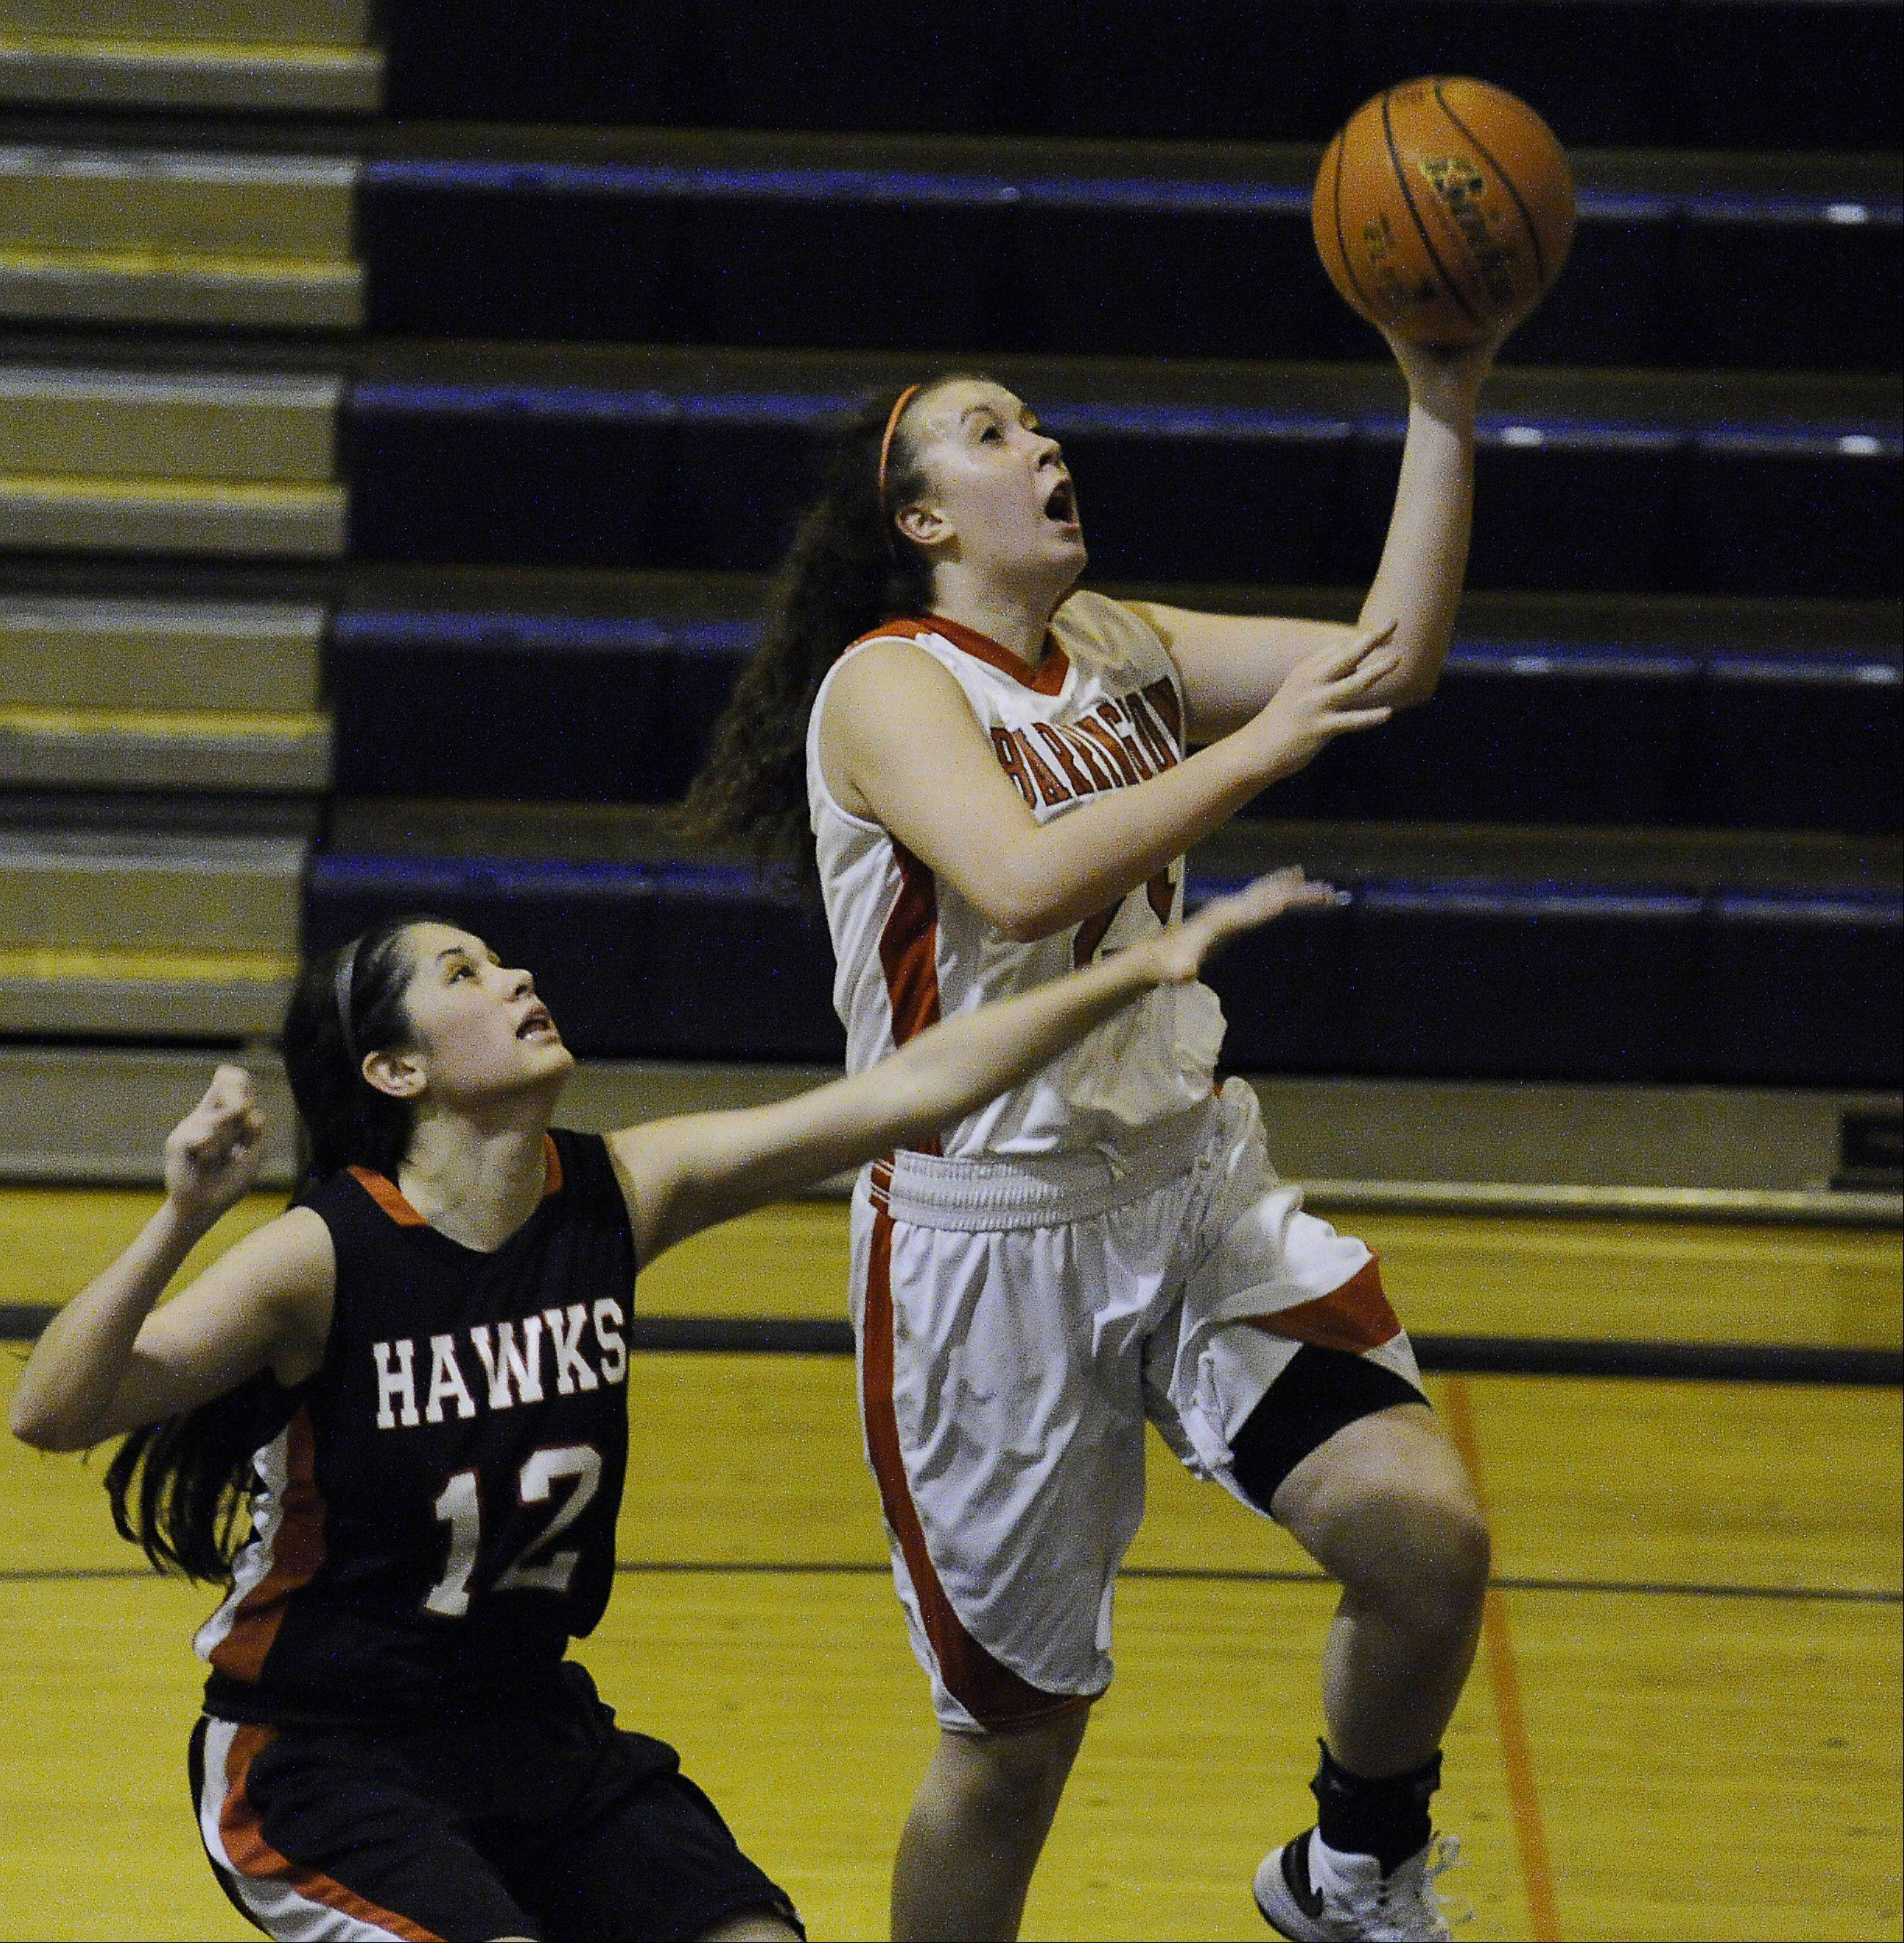 Maine South's Mackenzie Duffy is unable to stop the drive to the basket by Aoife Callanan of Barrington during the Bison Classic girls varsity basketball Thanksgiving Tournament at Buffalo Grove High School on Thursday.